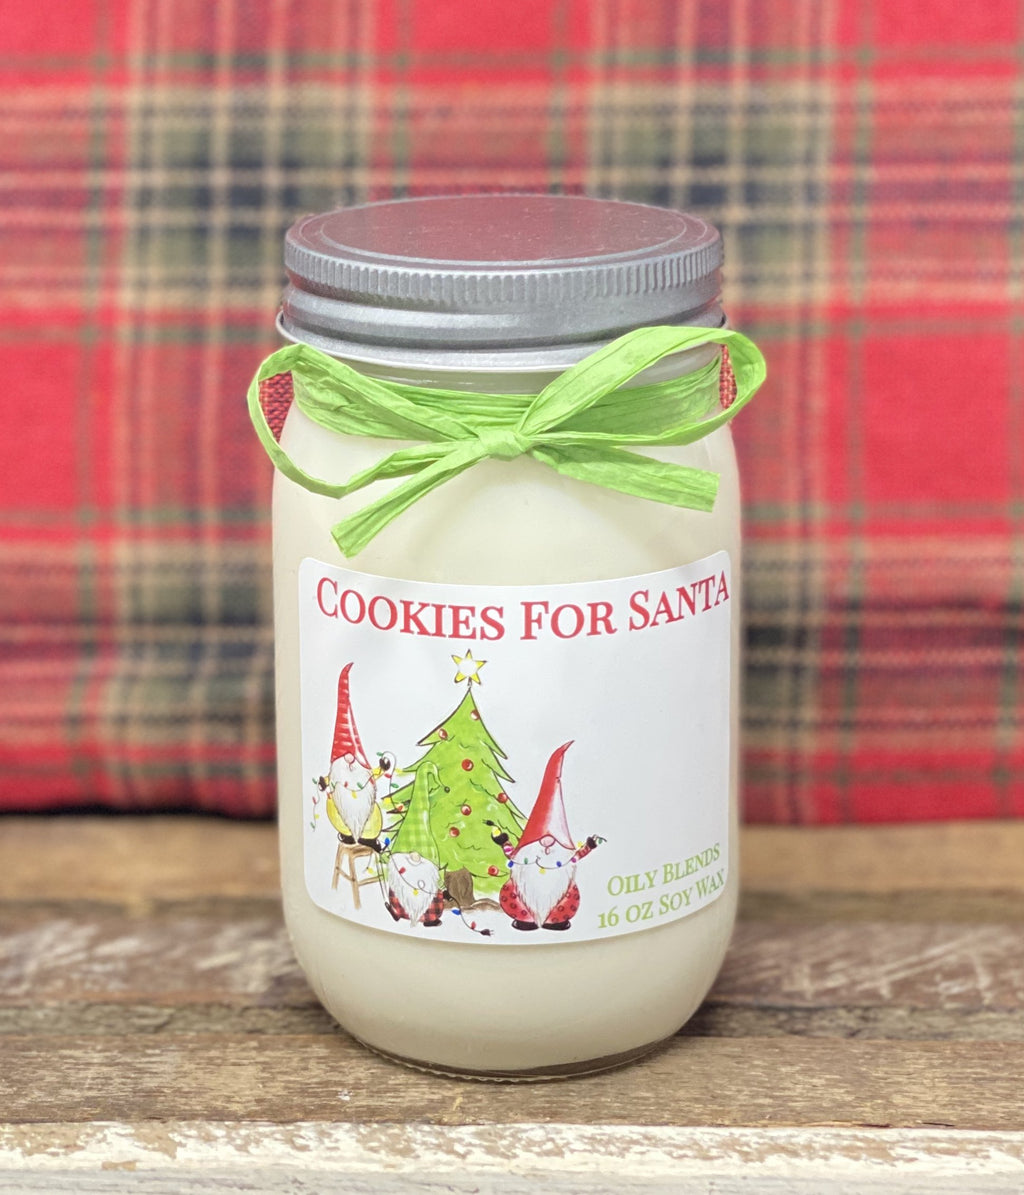 Gnome Christmas Candles - 16 oz Jumbo Soy Wax-Cookies for Santa-Womens Artisan USA American Made Clothing Accessories